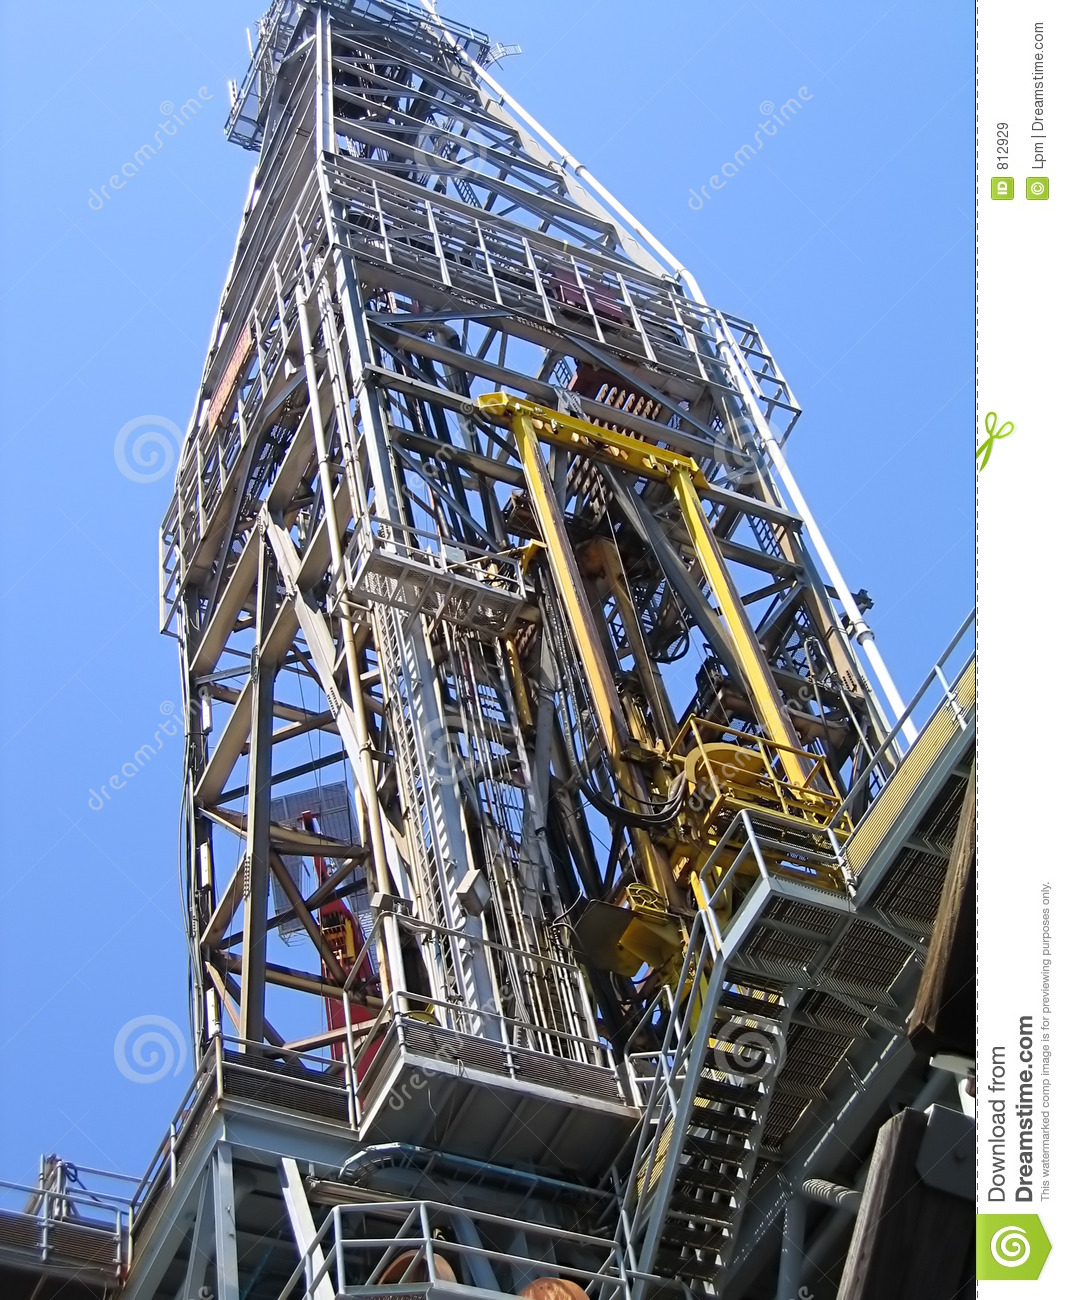 Offshore Drilling Rig Derrick on deepwater producing platform.